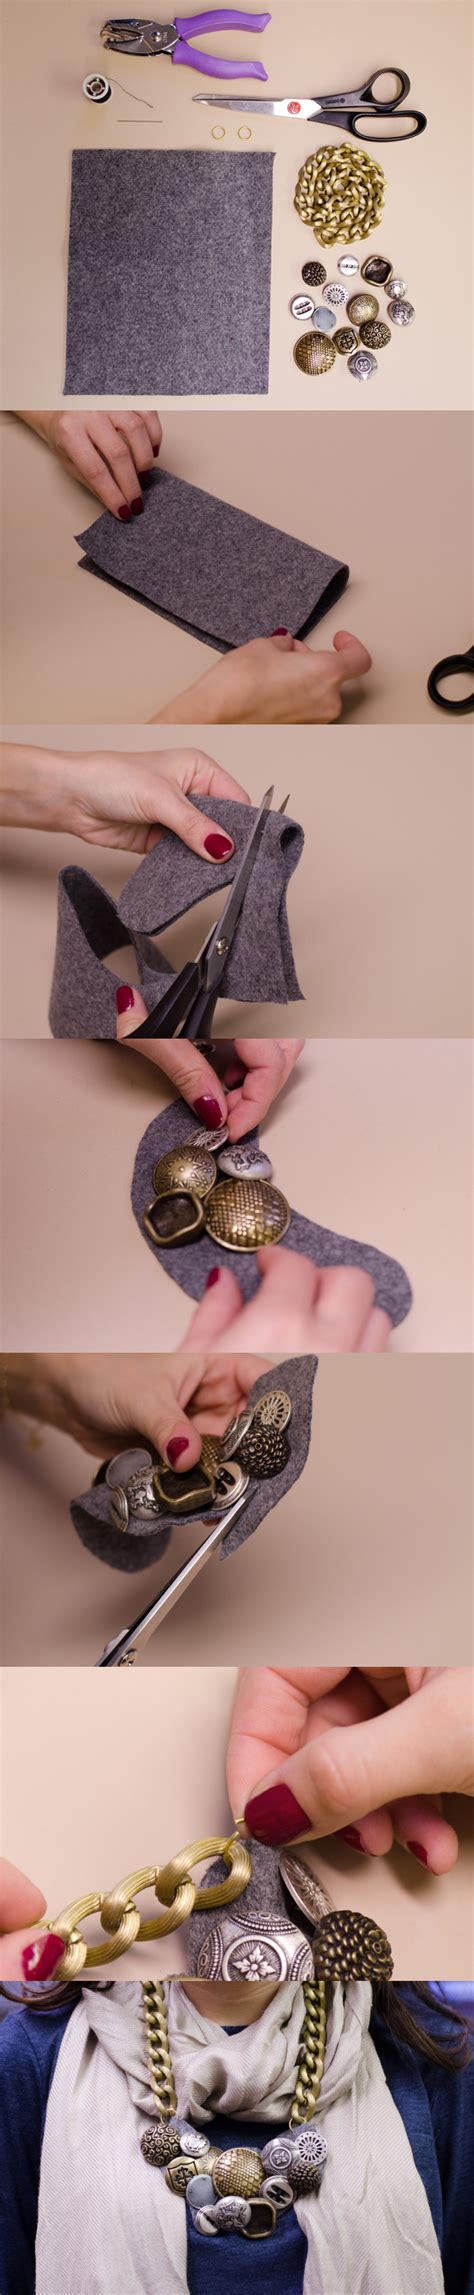 diy fashion projects amazingly easy to make diy fashion projects